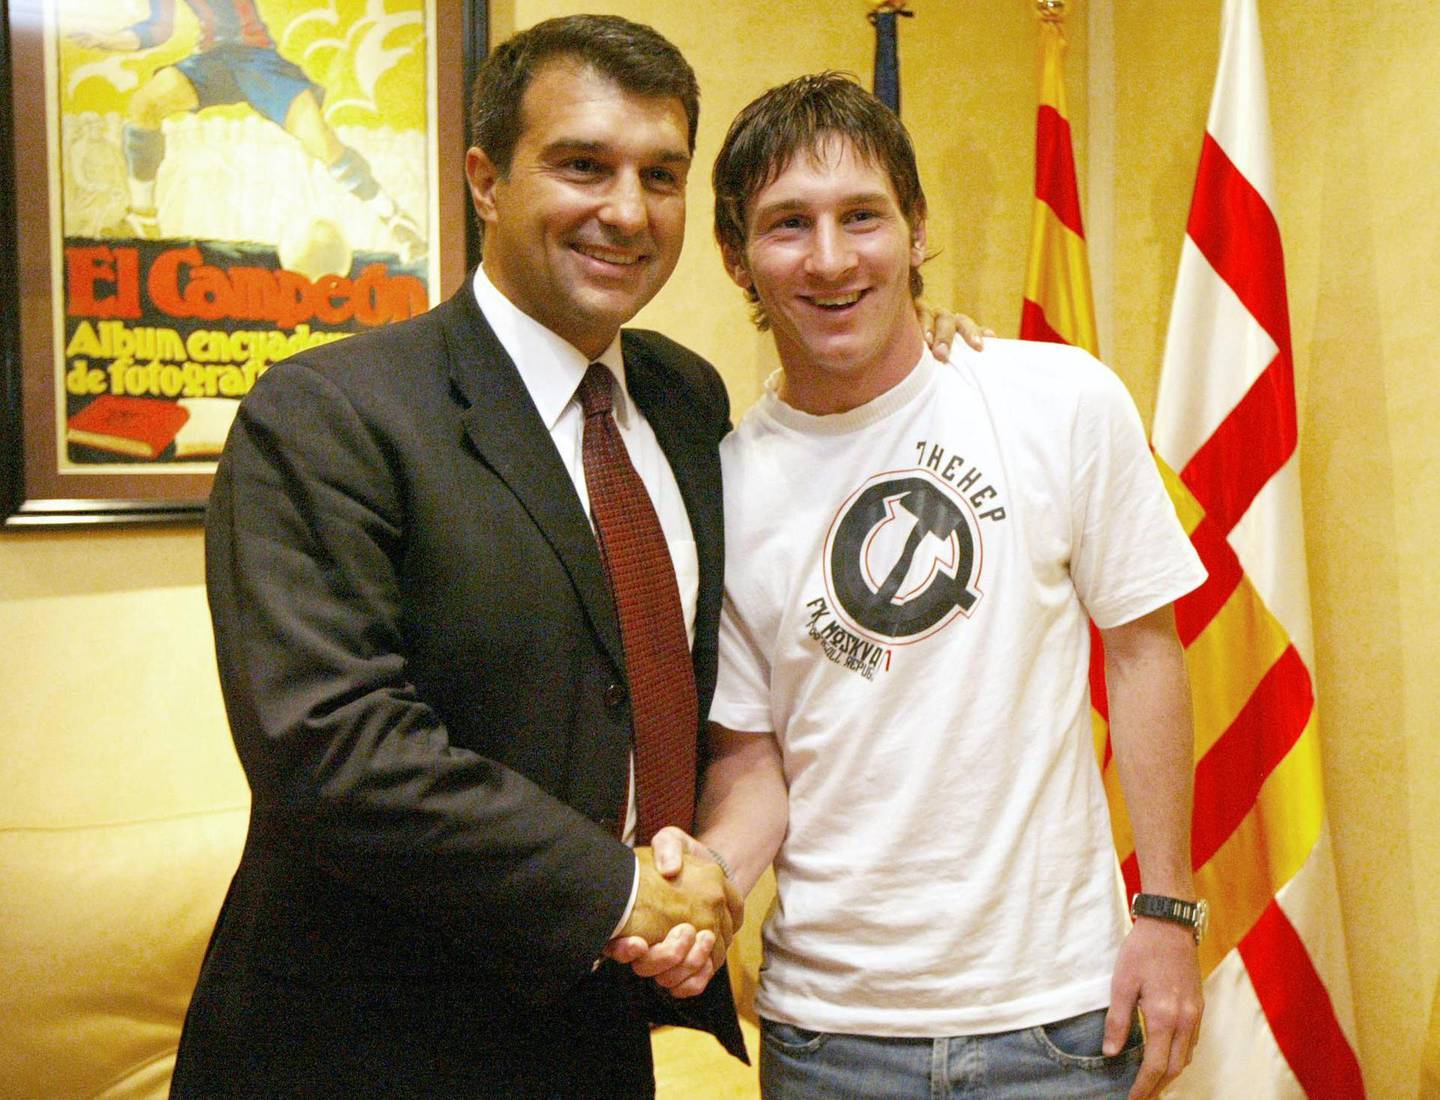 Hand out photograph of Barcelona's Argentinian football player Lioneleo Messi (R) shaking hands with FC Barcelona's President Joan Laporta (L) dated 16 September 2005 after Messi extended his contract until 2014 at Nou Camp Stadium in Barcelona. Messi has reached an agreement for the extension of the Argentinean player's contract until 30 June 2014, and includes a 150 million euro buyout clause.   AFP PHOTO FCBARCELONA.COM (Photo by FCBARCELONA.COM / FCBARCELONA.COM / AFP)